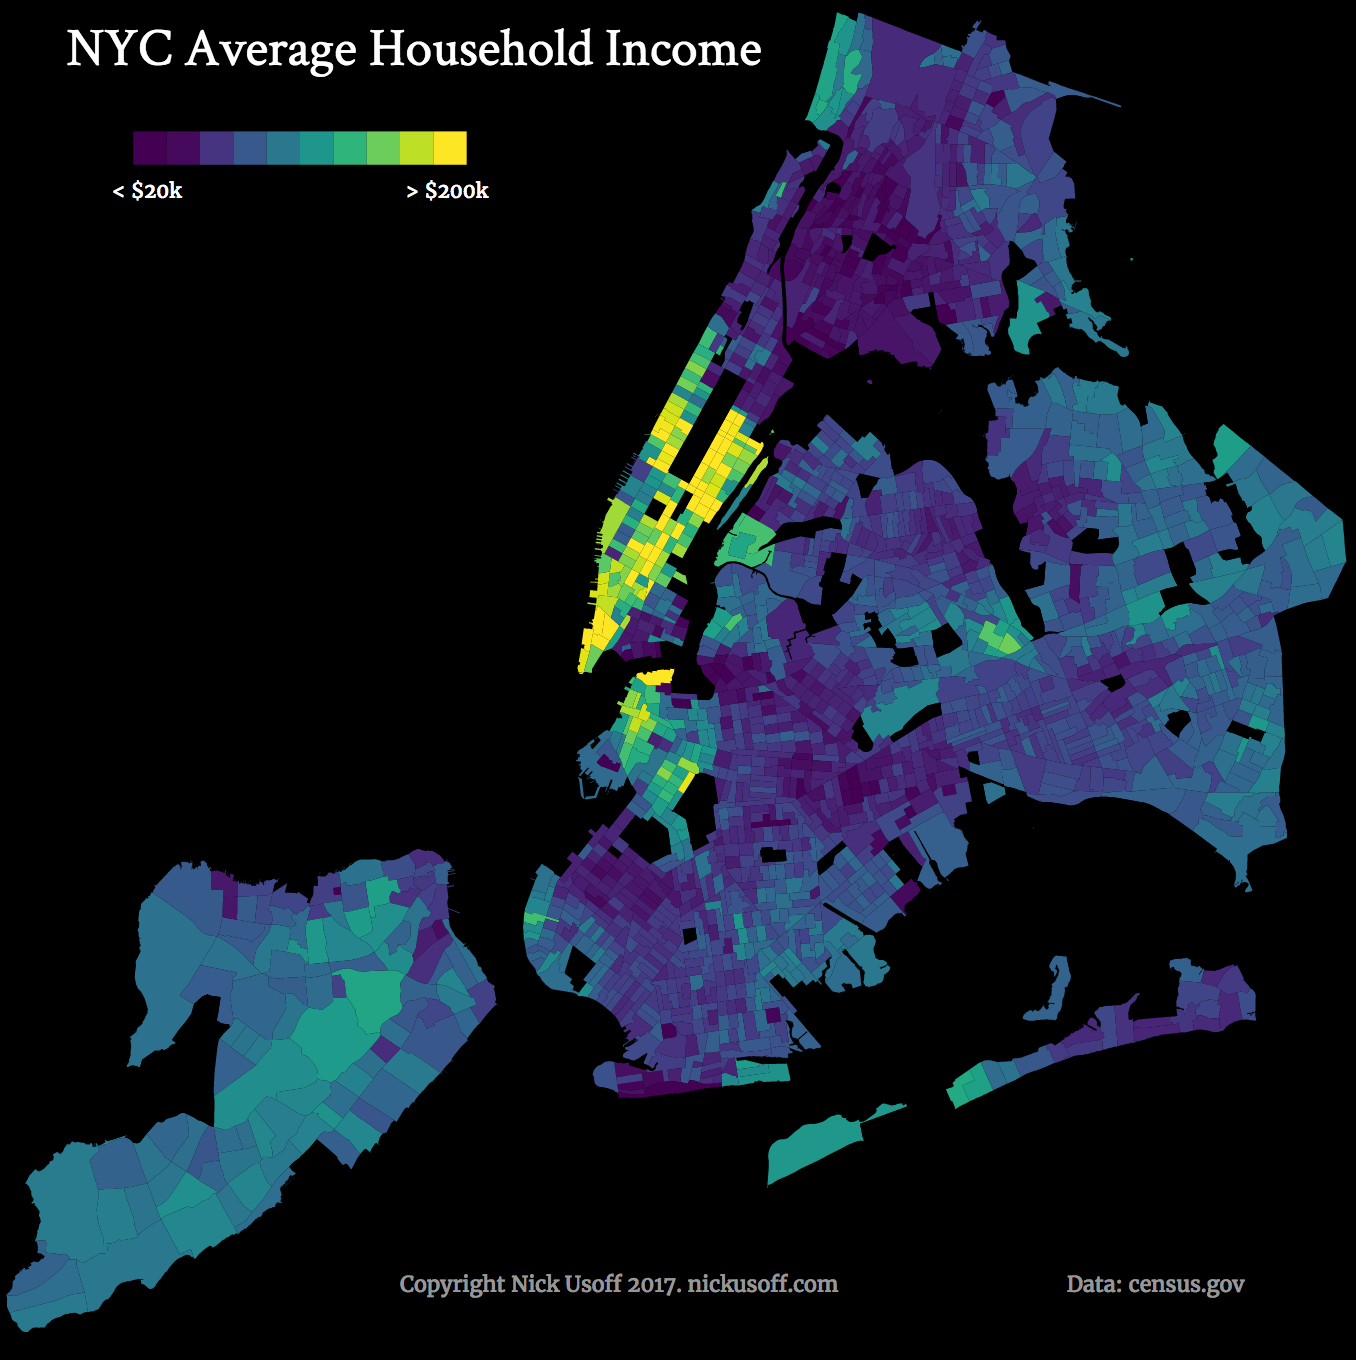 NYC average household income